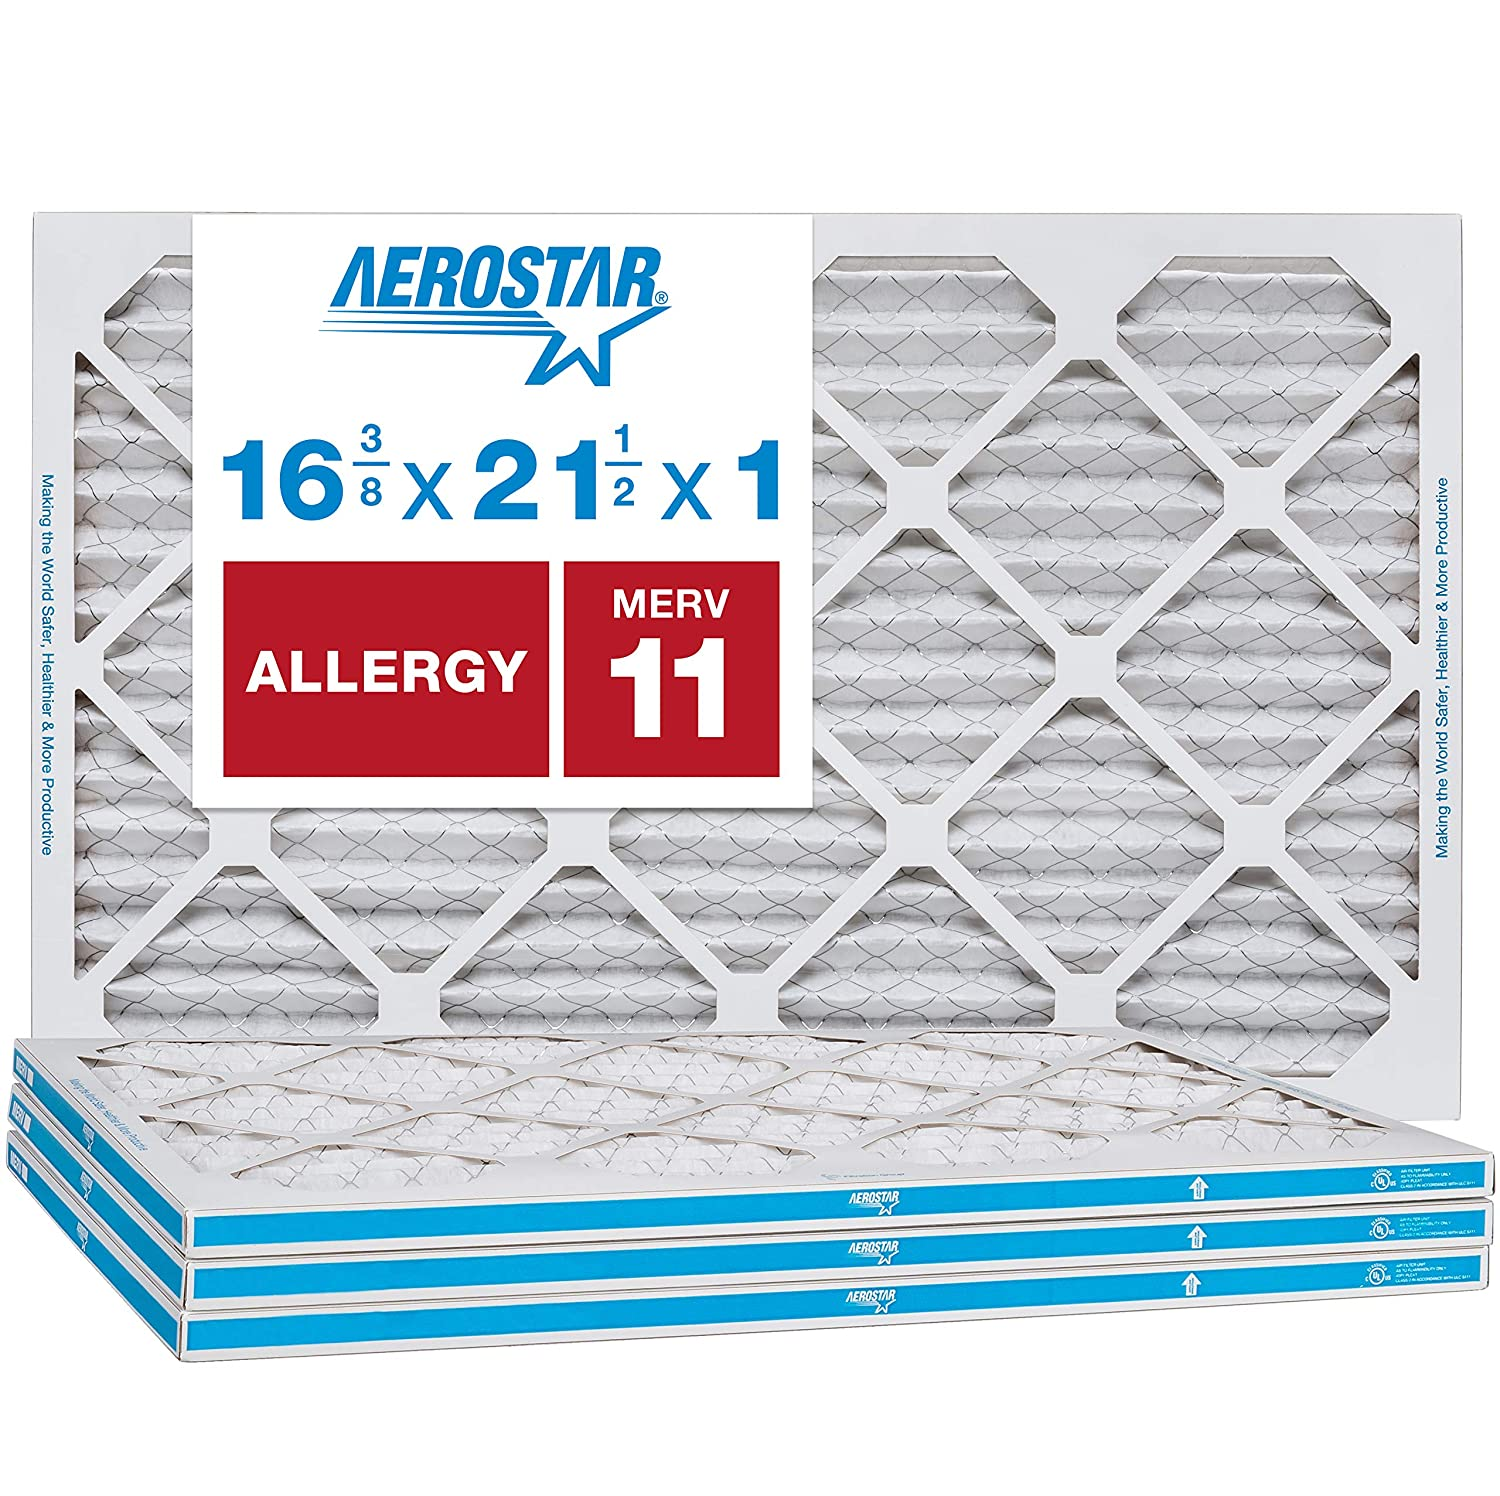 """Aerostar Allergen & Pet Dander 16 3/8x21 1/2x1 MERV 11 Pleated Air Filter, Made in The USA, (Actual Size: 16 3/8""""x21 1/2""""x3/4""""), 4-Pack"""